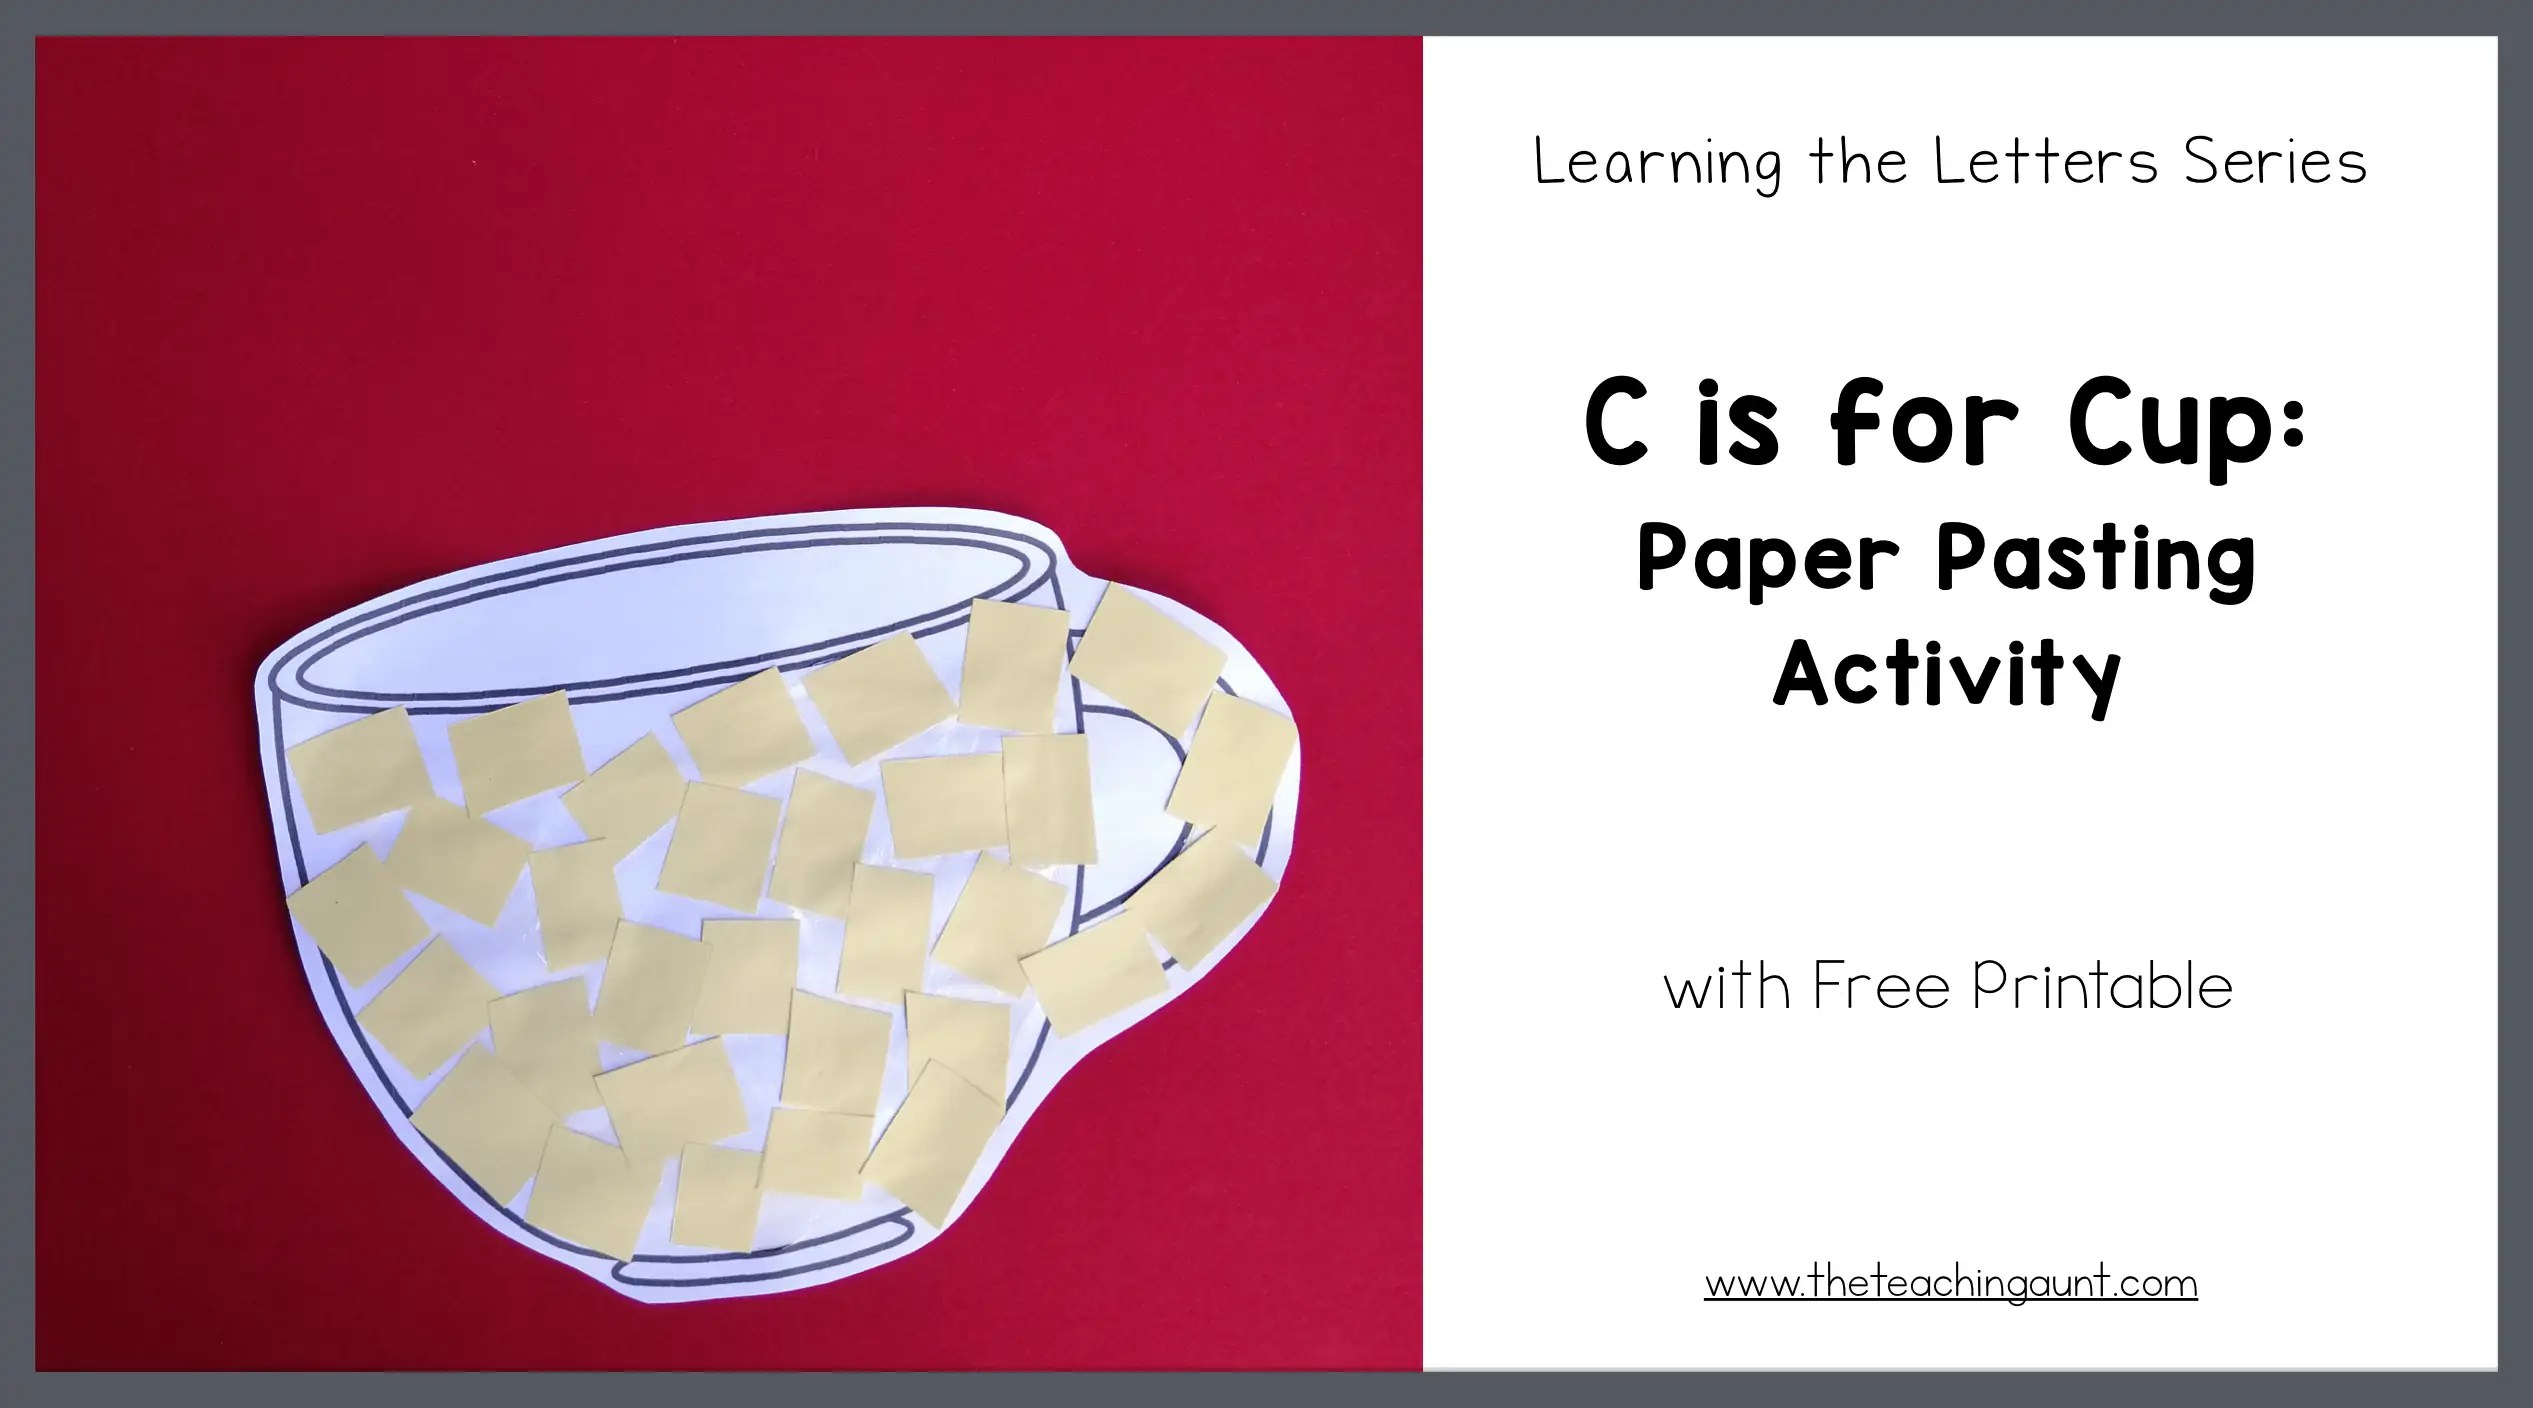 C is for Cup: Paper Pasting Activity